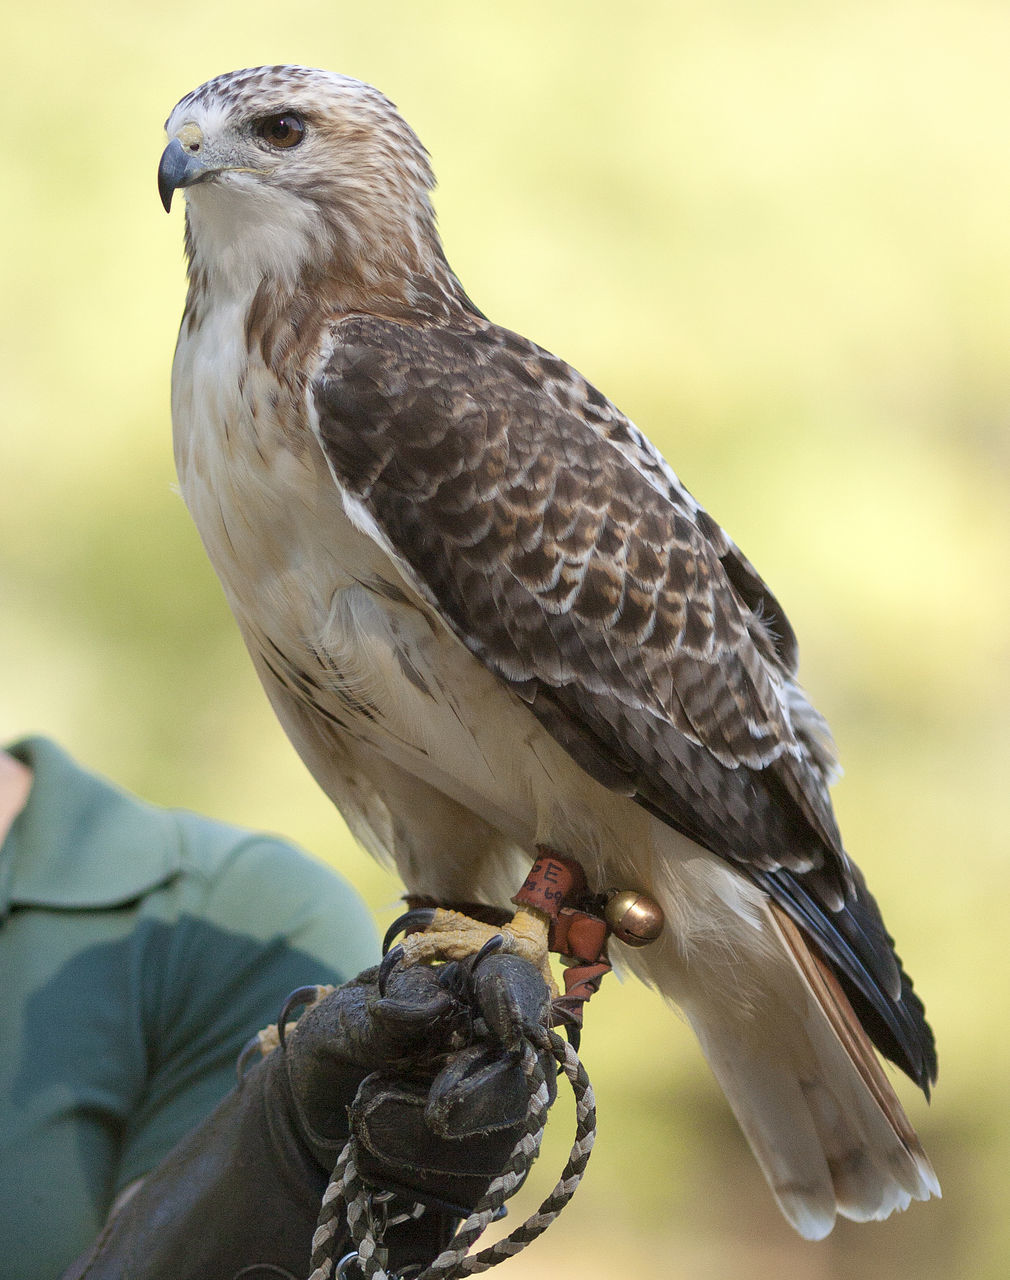 bird, animal themes, animals in the wild, one animal, animal wildlife, perching, bird of prey, close-up, no people, day, nature, outdoors, hawk